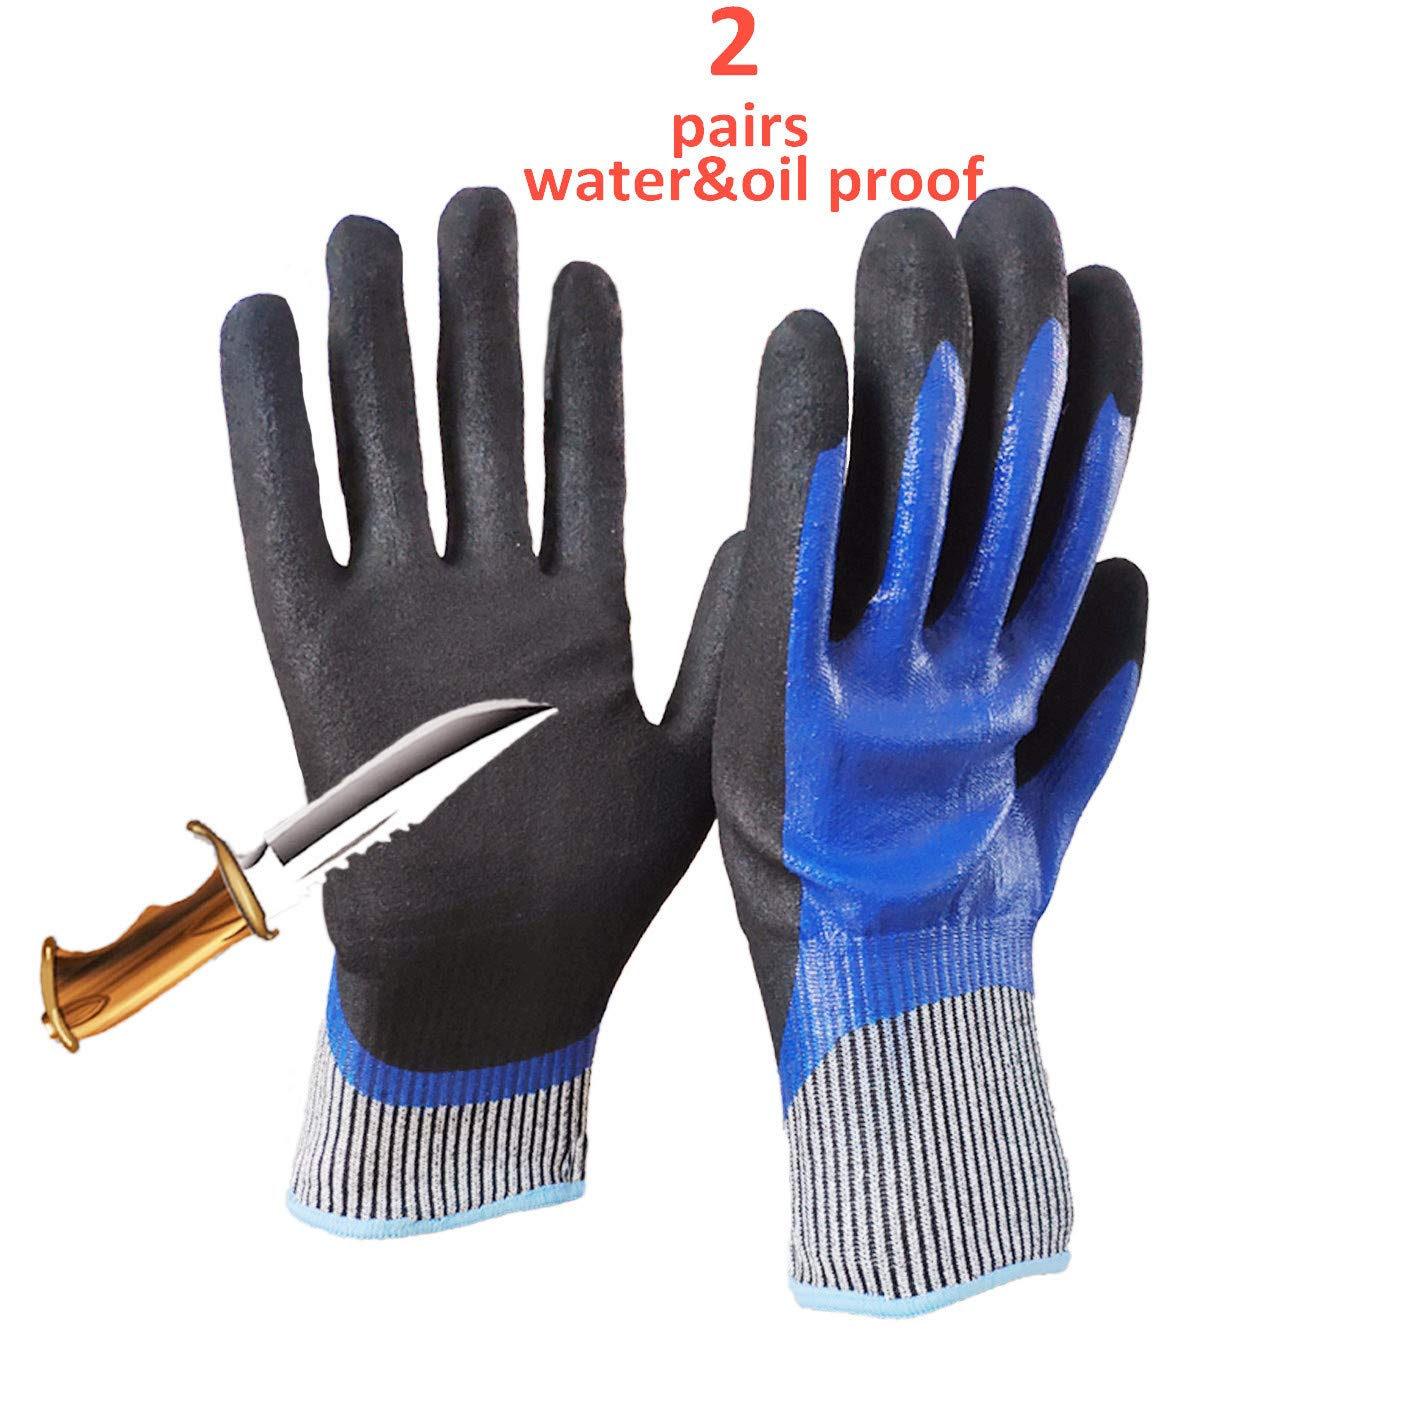 5 Level Cut-Resistant Waterproof Safety Protect Hand Gloves Nitrile and Latex Dual Palm Coated for Gargen work, Industrial production, Glasses handling, Indoor and Outdoor working (L-2pairs) by Safety Hands (Image #1)